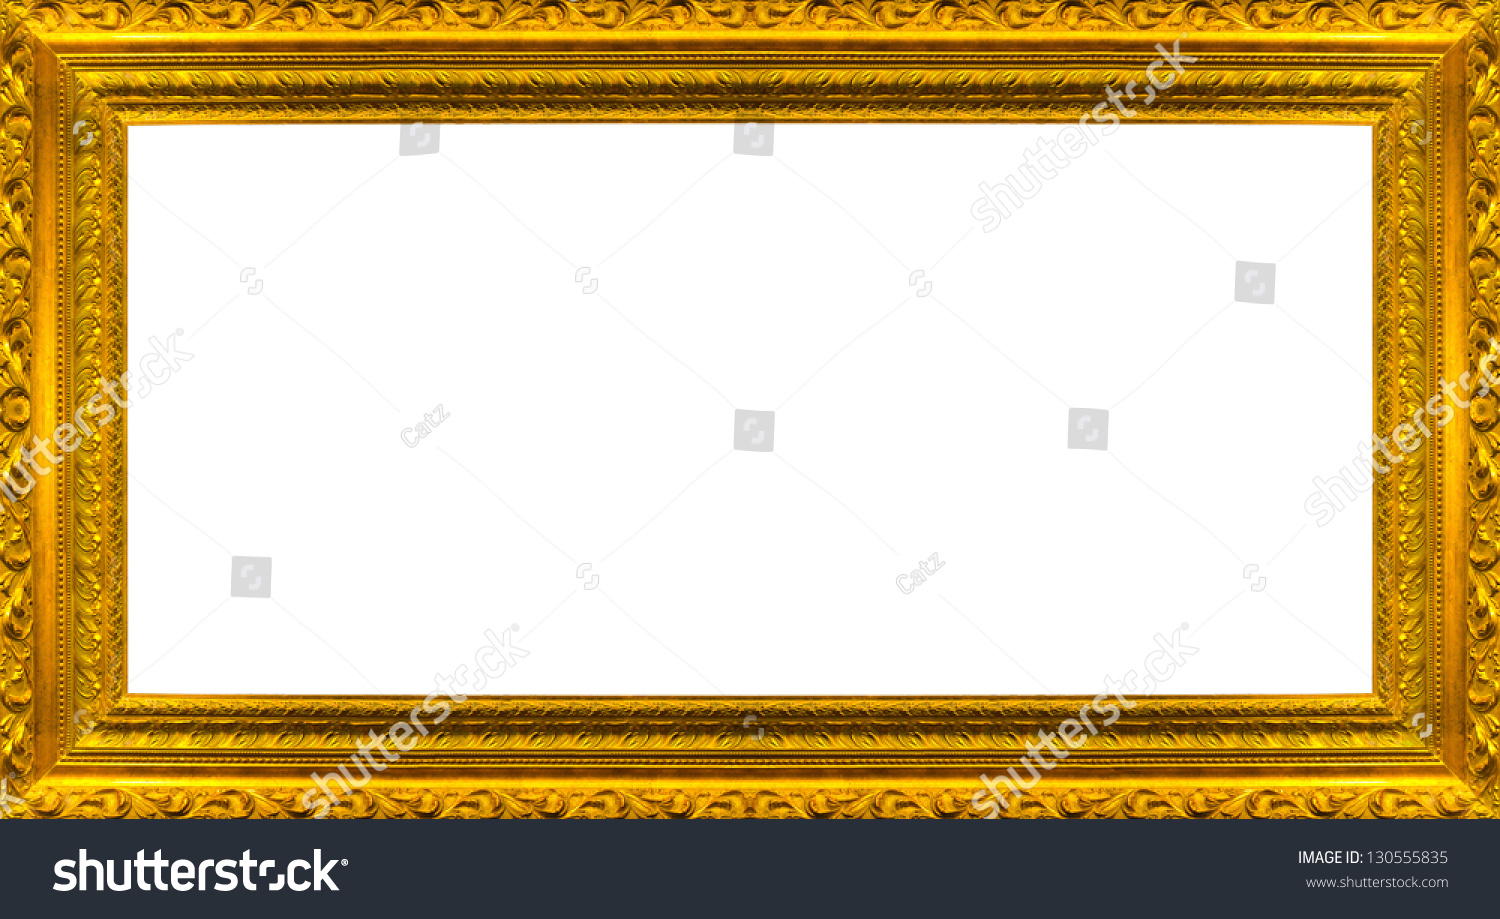 Very Big Size Large Golden Picture Stock Photo (Edit Now) 130555835 ...